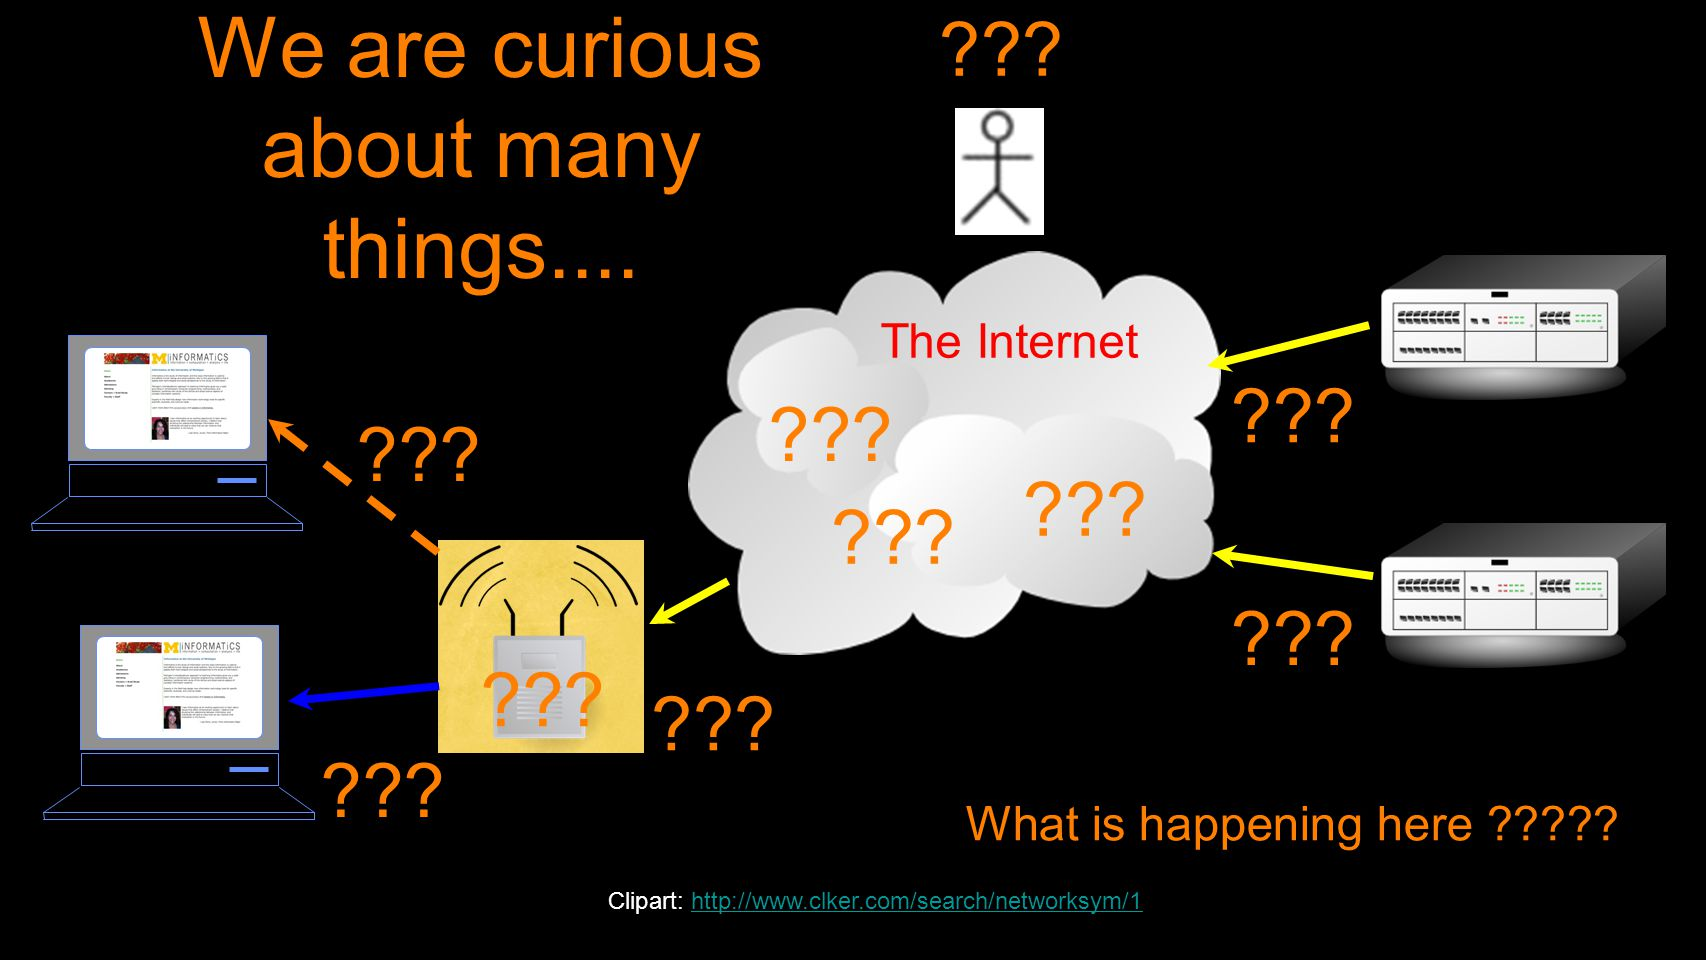 We are curious about many things....